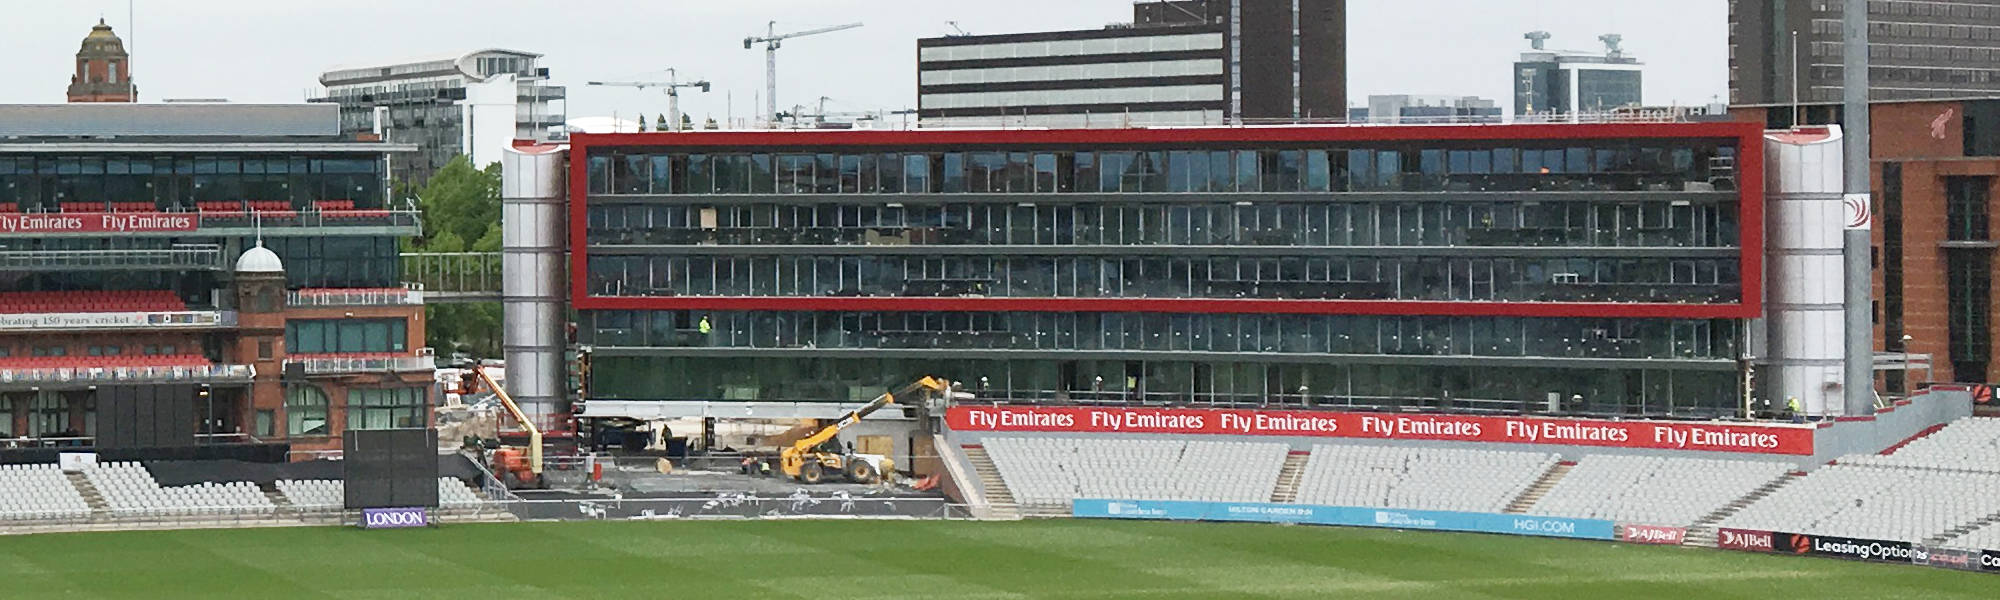 PCEs Emirates Old Trafford Hotel project